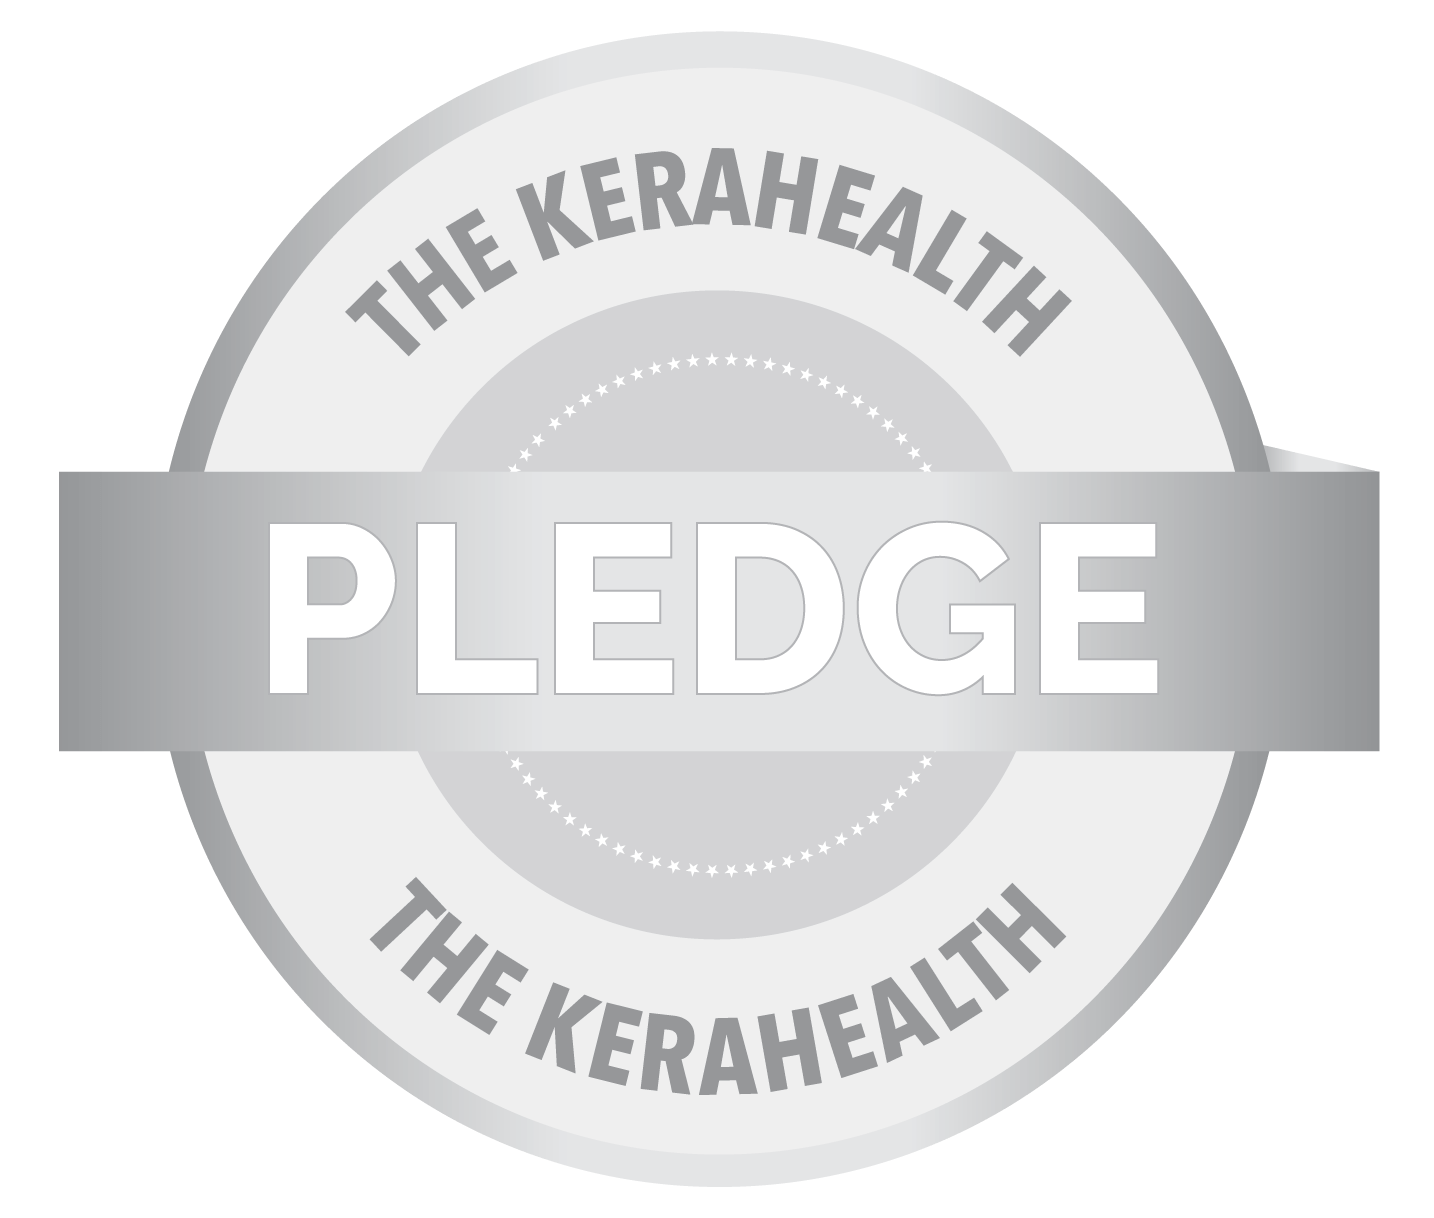 KeraHealth pledge